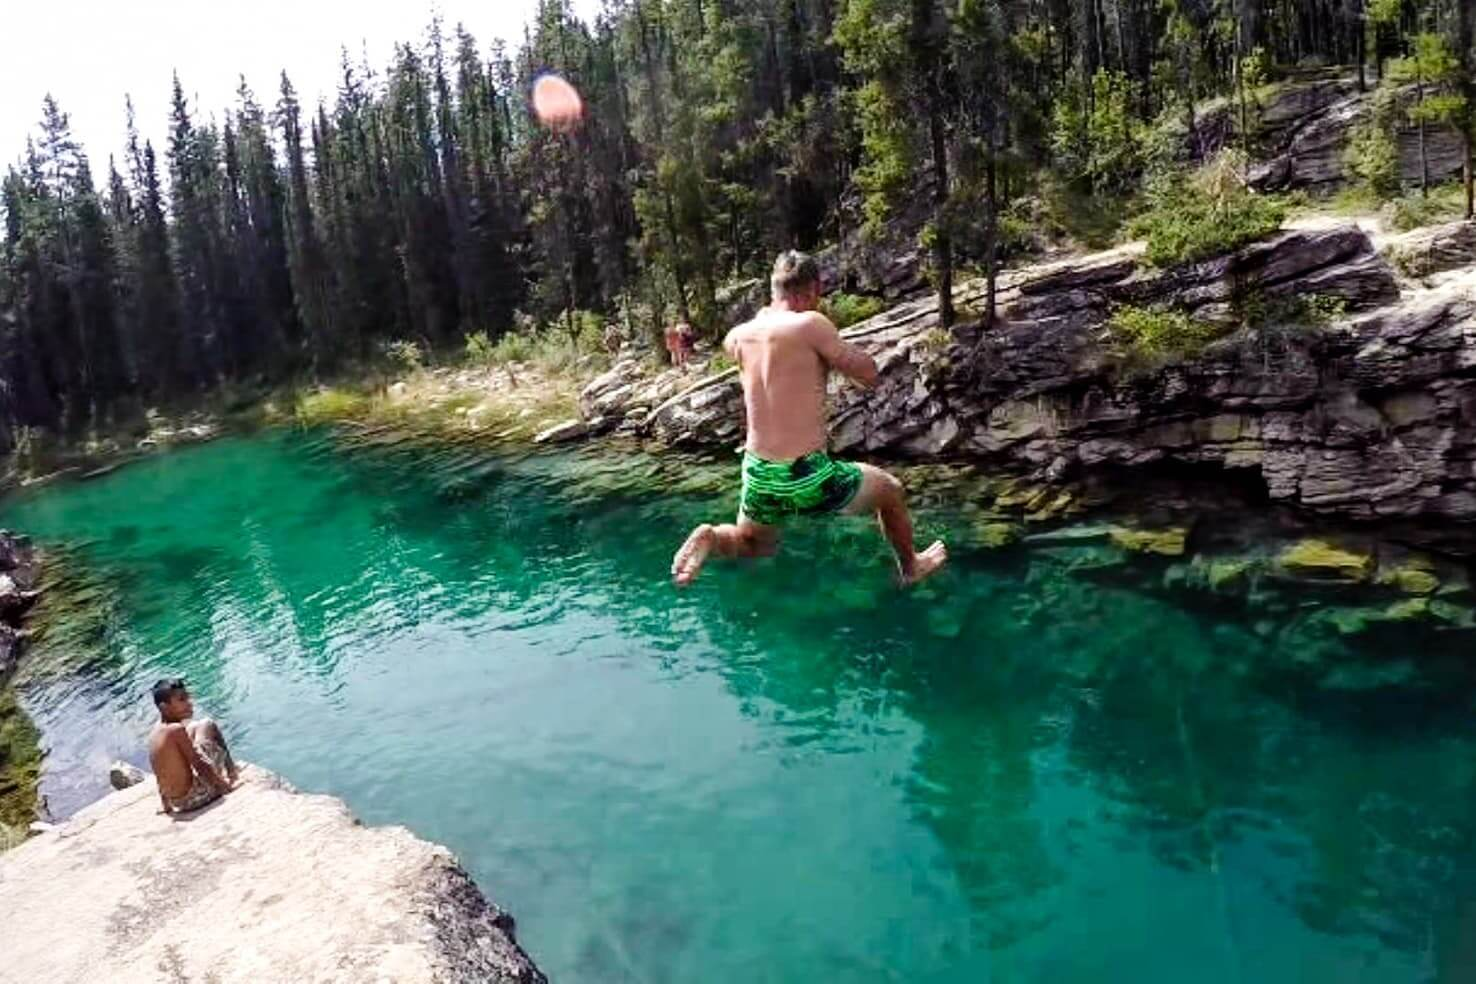 Things to do in Jasper National Park - 9 Cliff jump at Horseshoe Lake